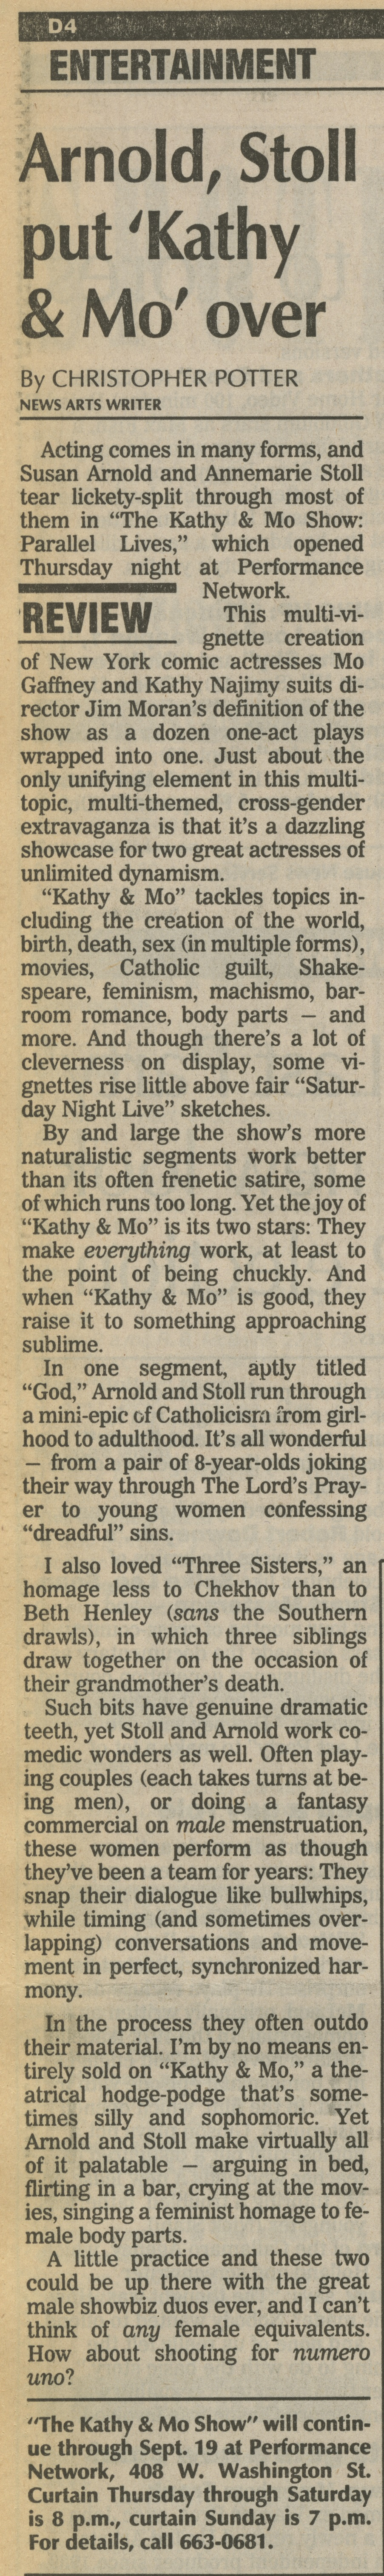 Arnold, Stoll put 'Kathy & Mo' over image